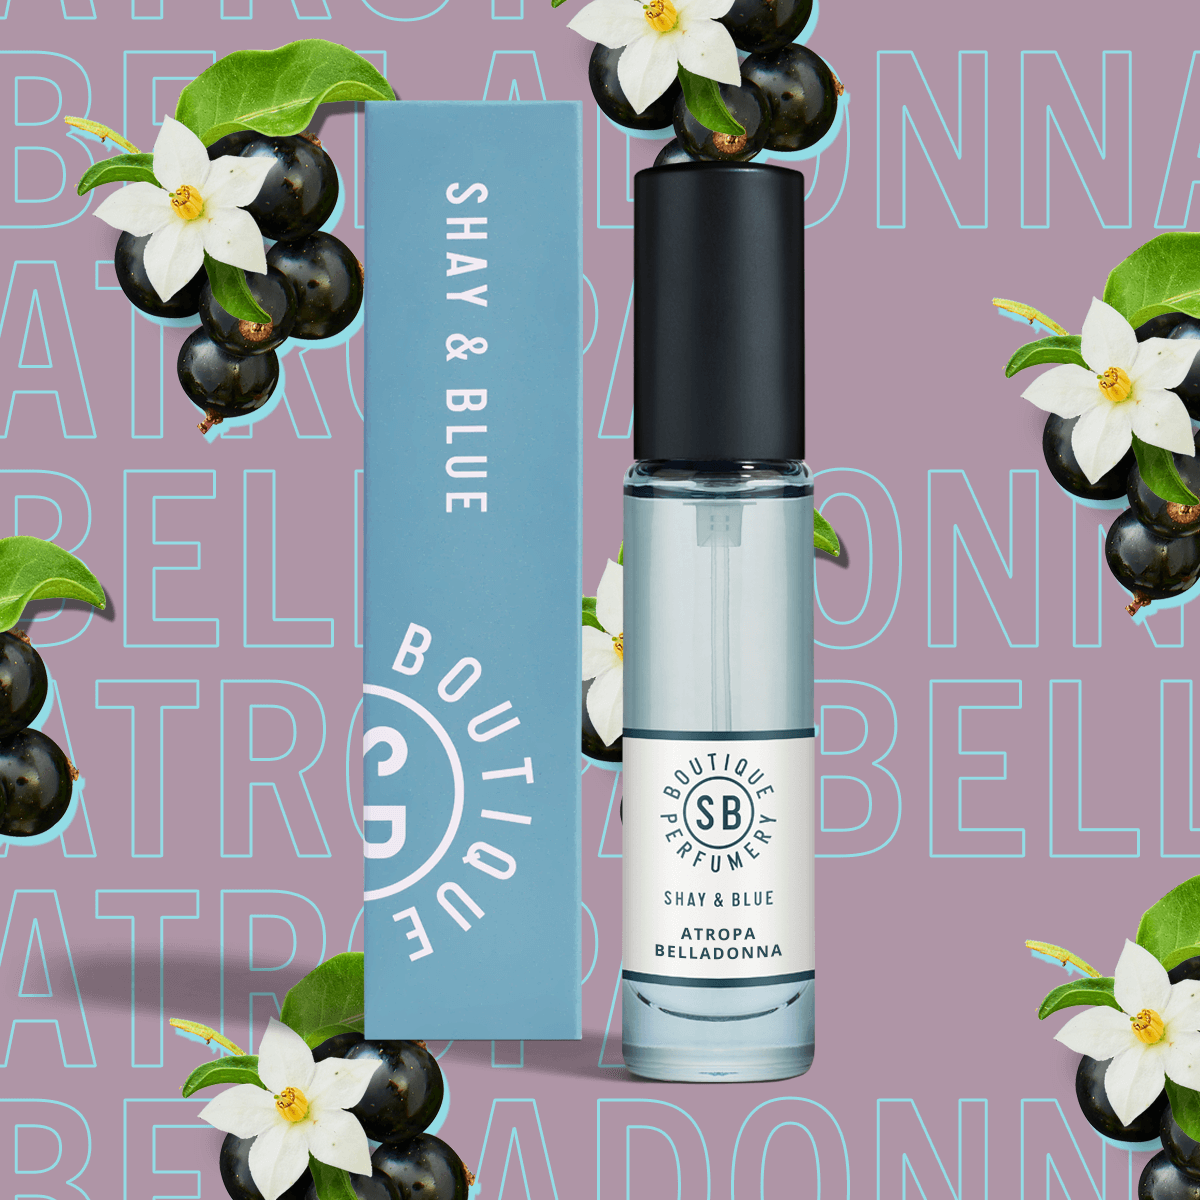 Atropa Belladonna Fragrance 10ml | Cassis berries and jasmine dance with layers of depth from patchouli and vanilla. | Clean All Gender Fragrance | Shay & Blue